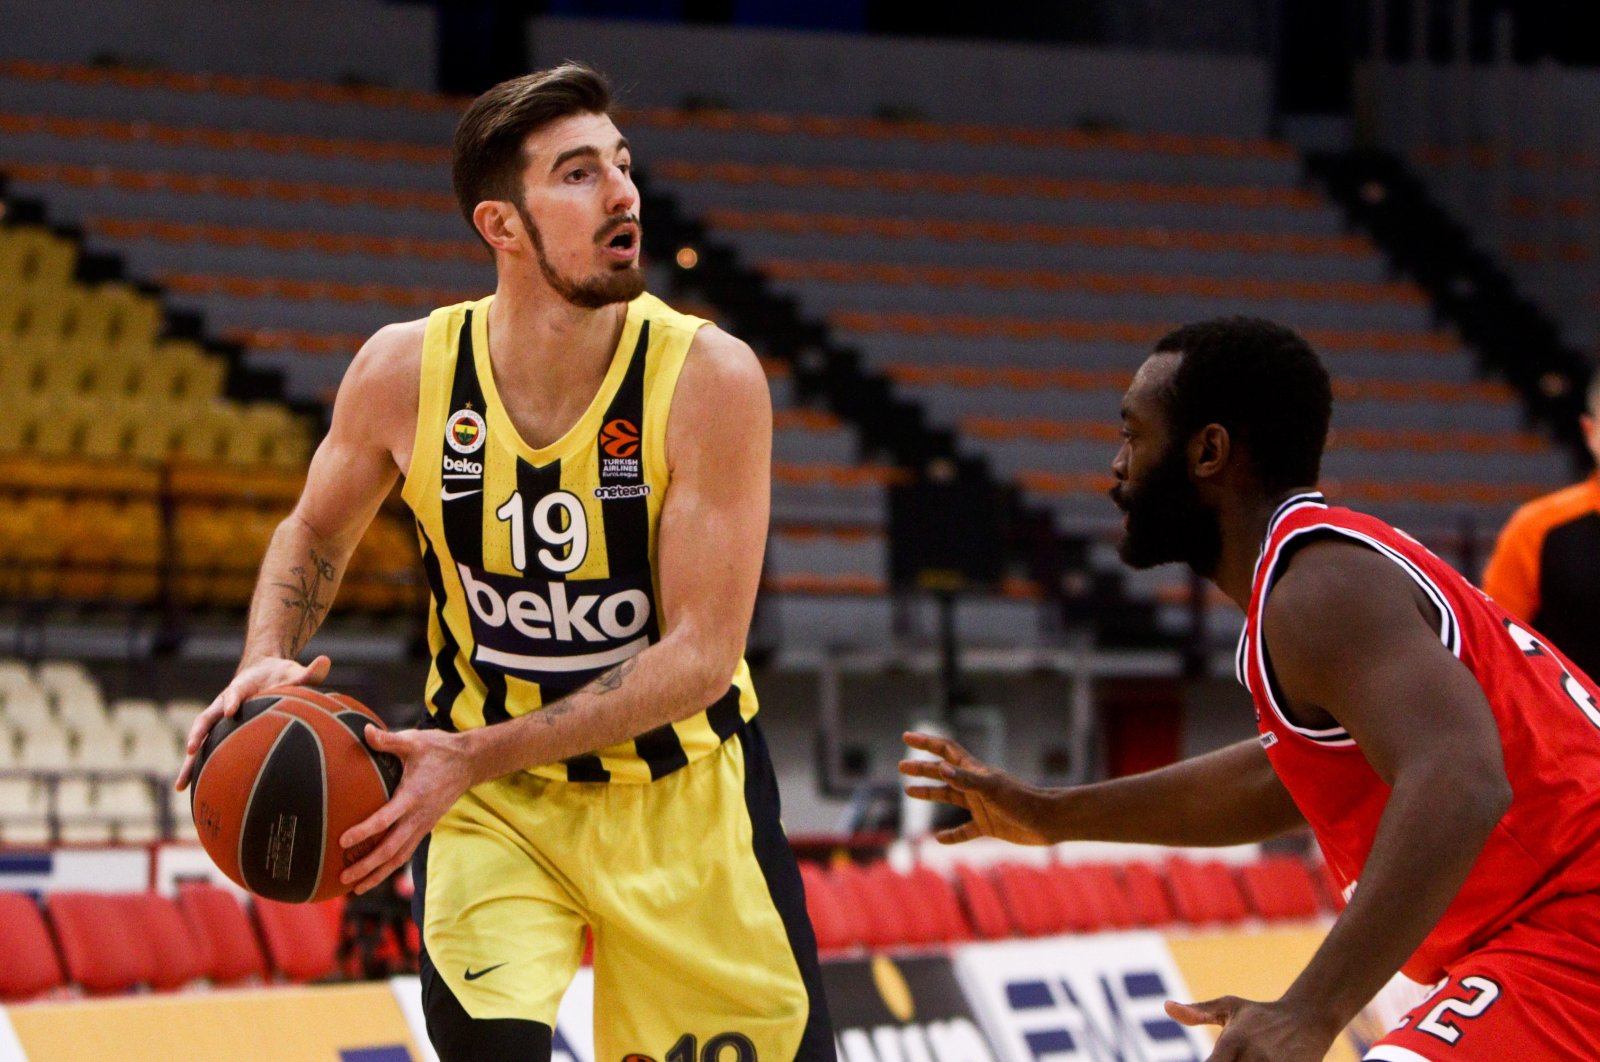 Fenerbahçe guard Nando De Colo (L) tries to pass the ball past Olympiacos Piraeus' Charles Jenkins during a EuroLeague match at the SEF Stadium in Piraeus, Greece, March 26, 2021. (EPA Photo)